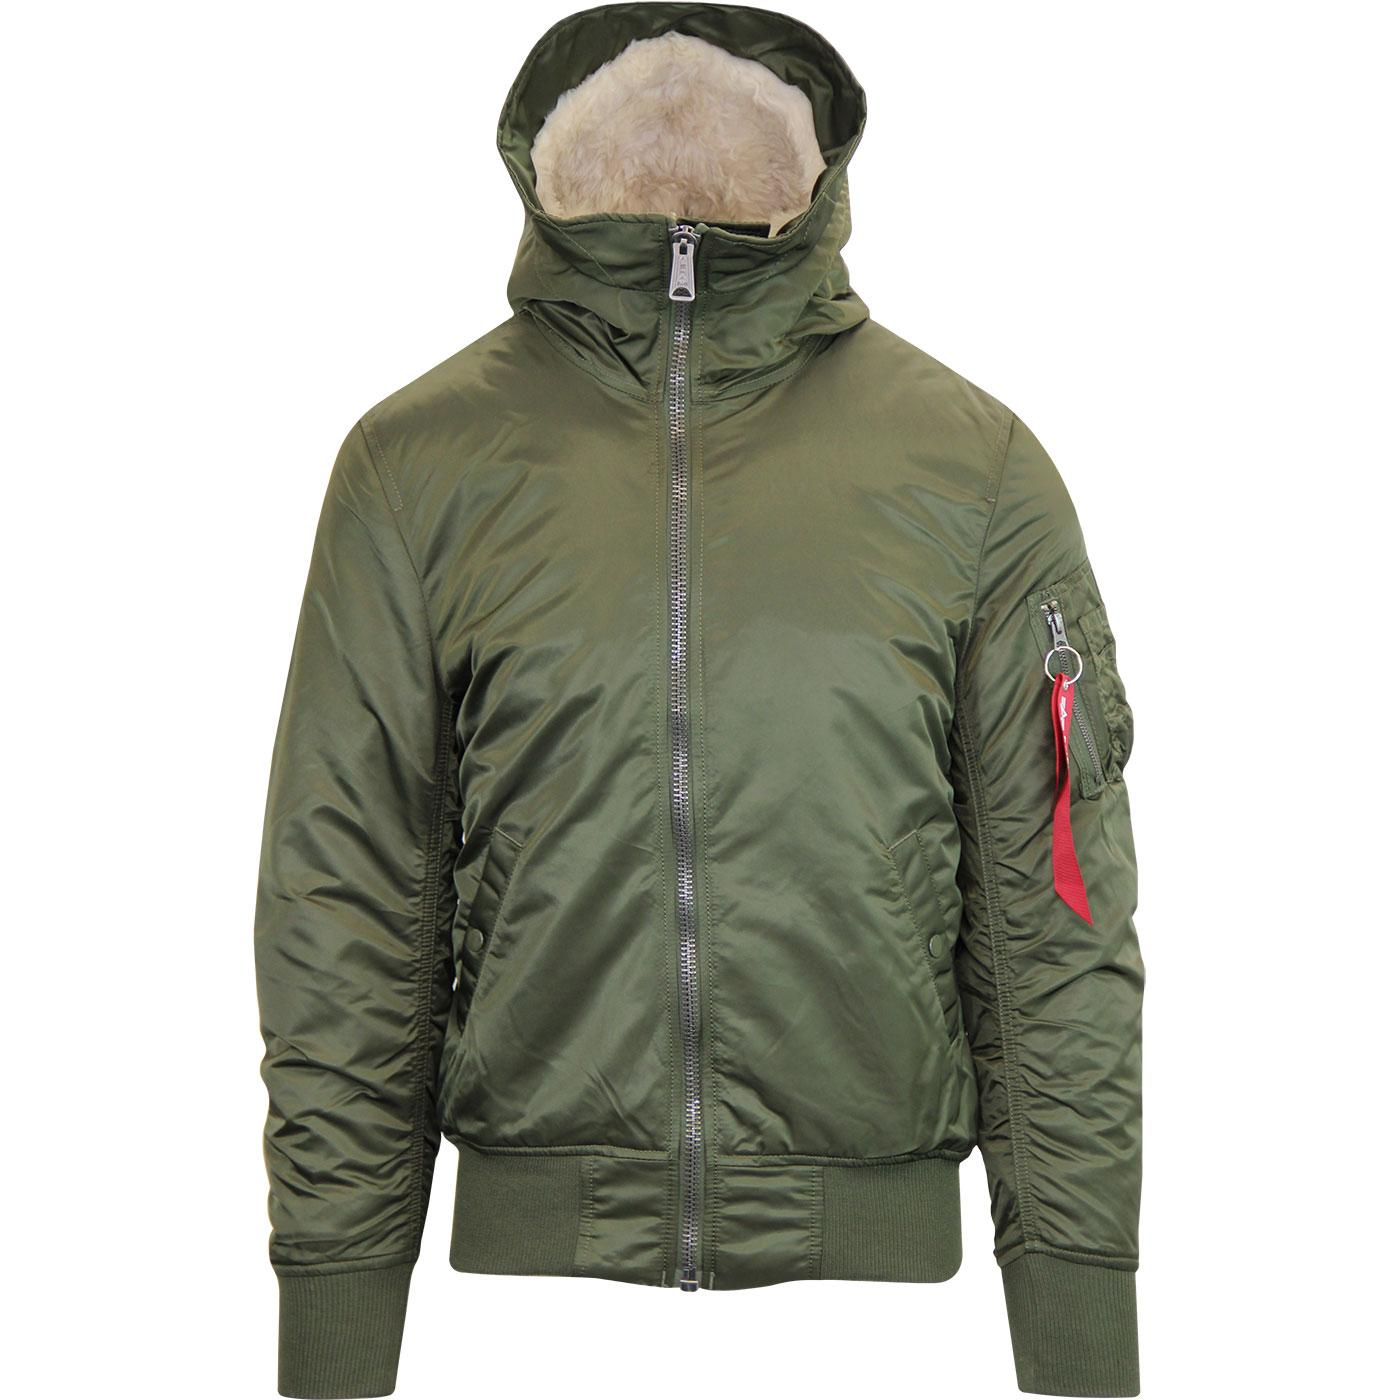 ALPHA INDUSTRIES MA-1 Hooded Mod Bomber Jacket